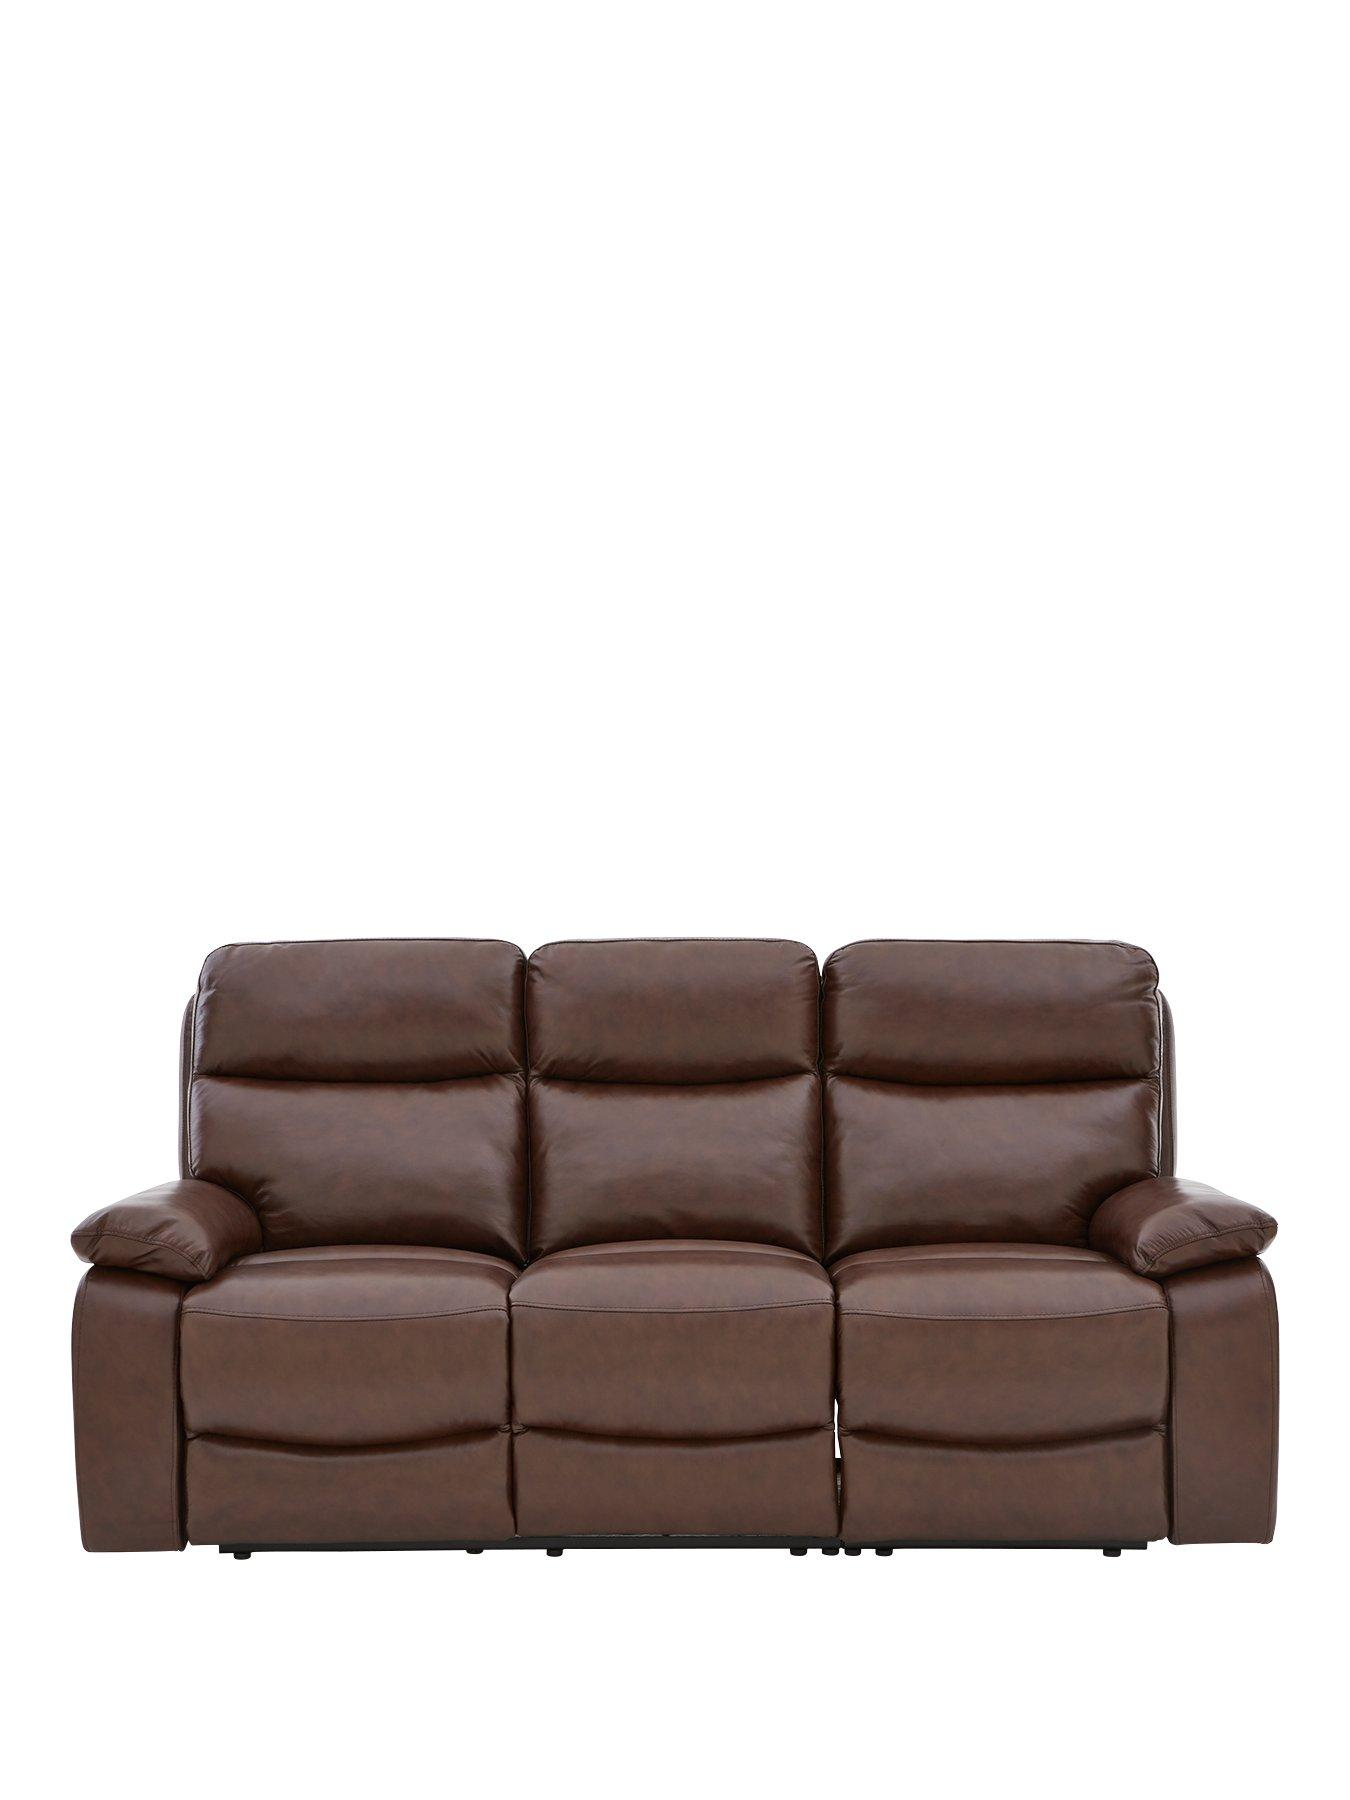 Leather | Recliner Sofas | Home & garden | very.co.uk